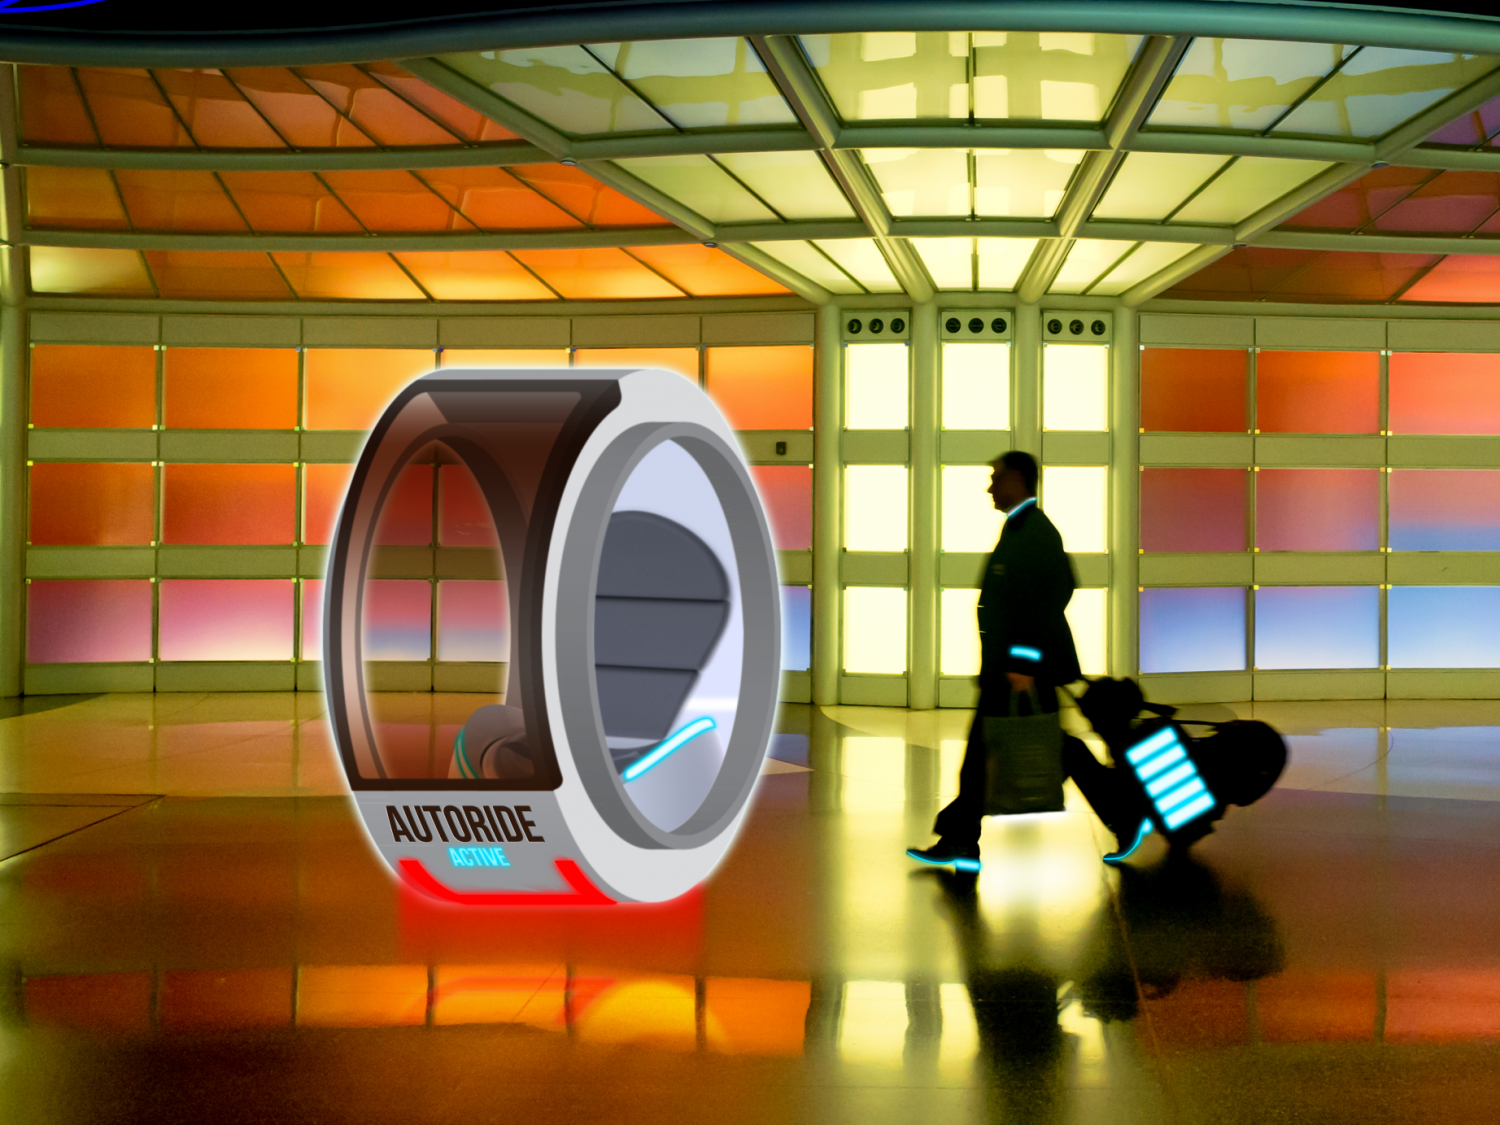 Airport transfer to the hotel room of the future